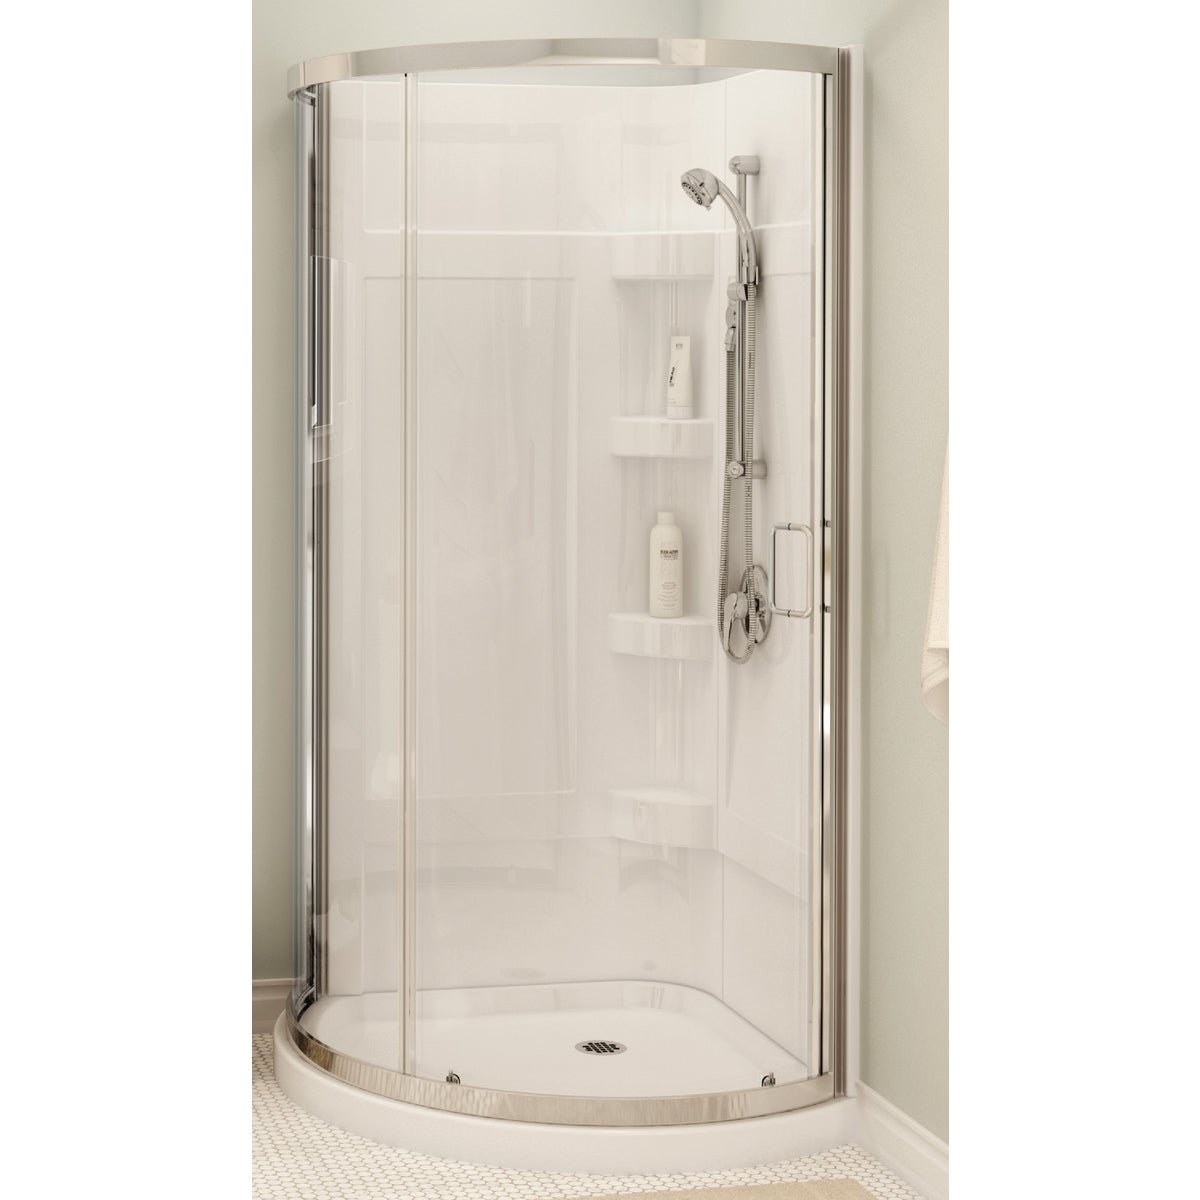 WHITE ROUND SHOWER